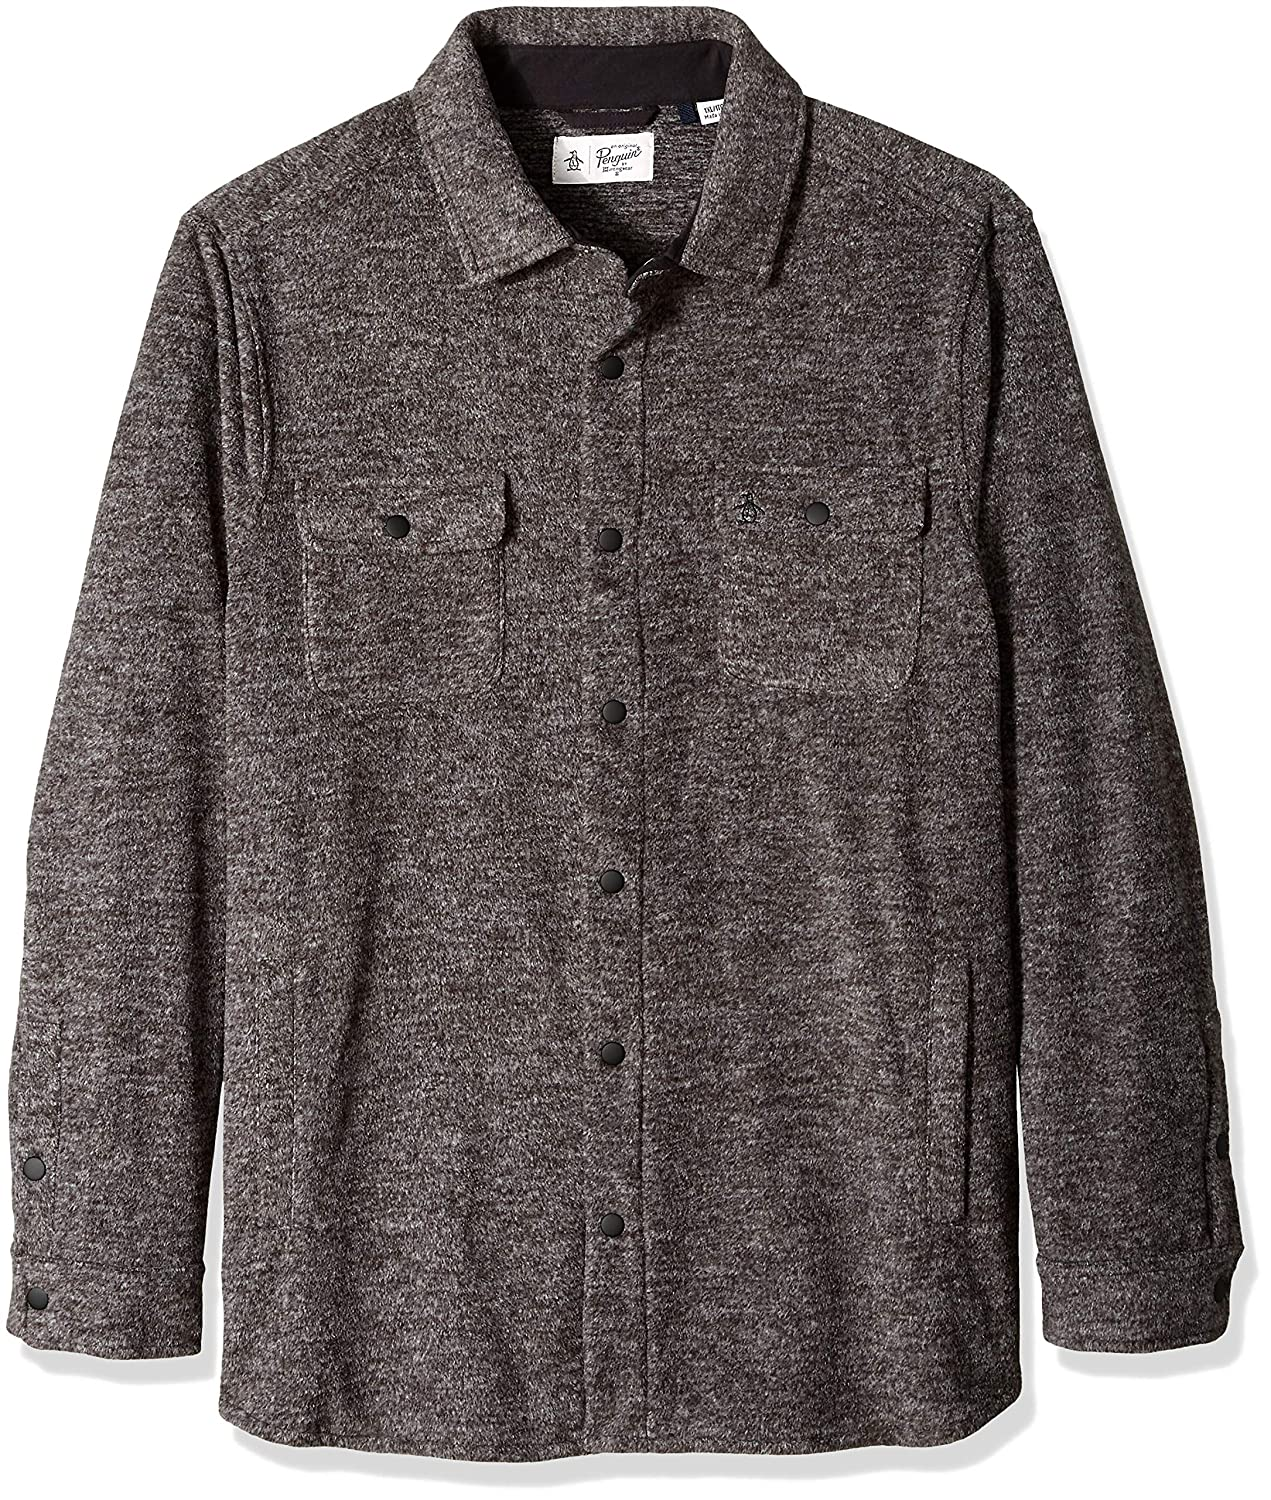 Original Penguin Men's Big and Tall Long Sleeve Button Down Fleece Jacket OPRF8B31